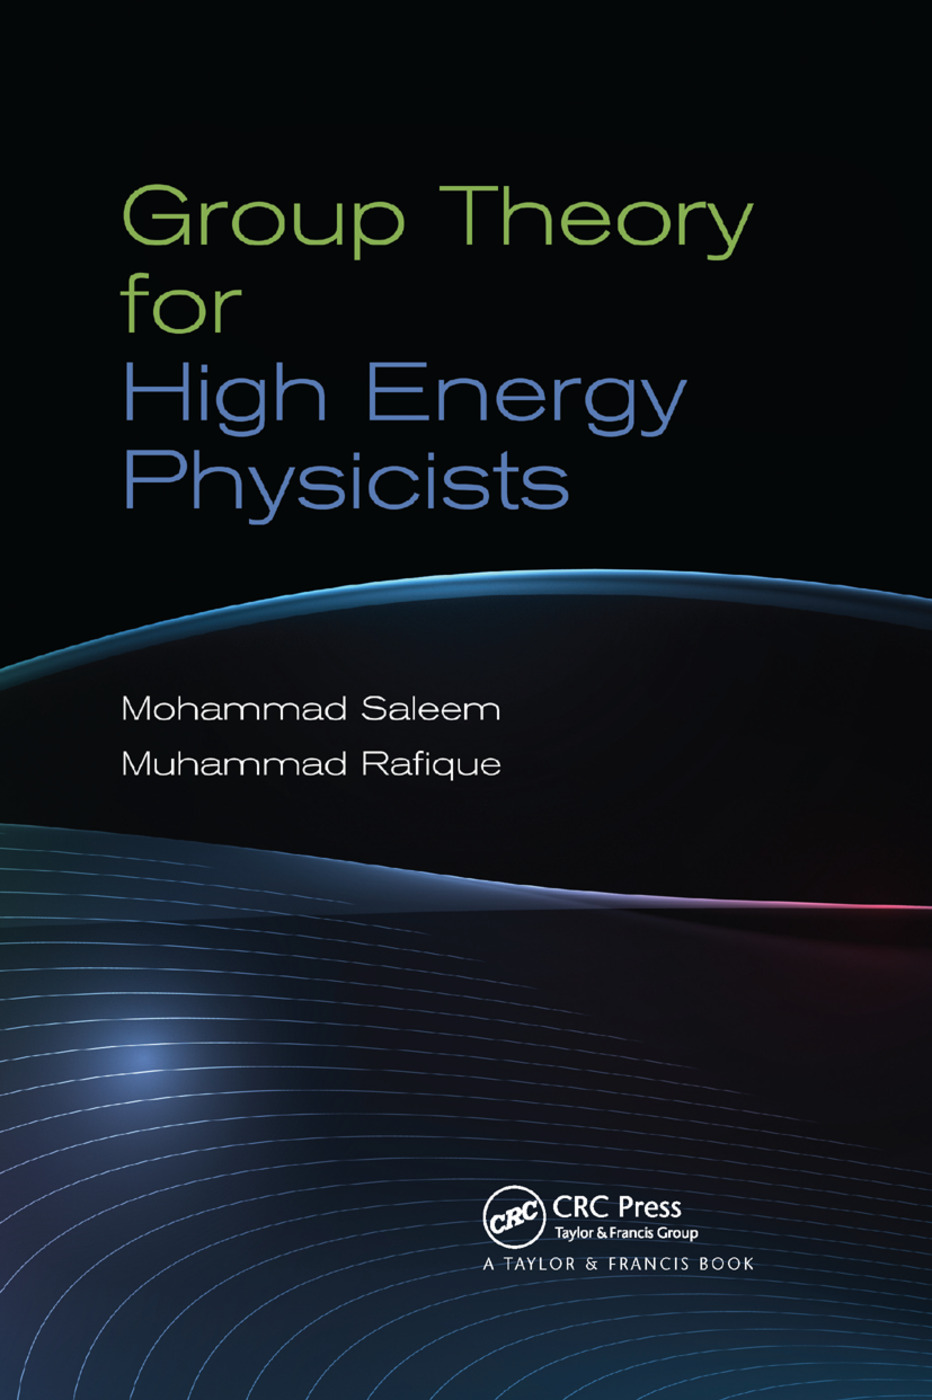 Group Theory for High Energy Physicists